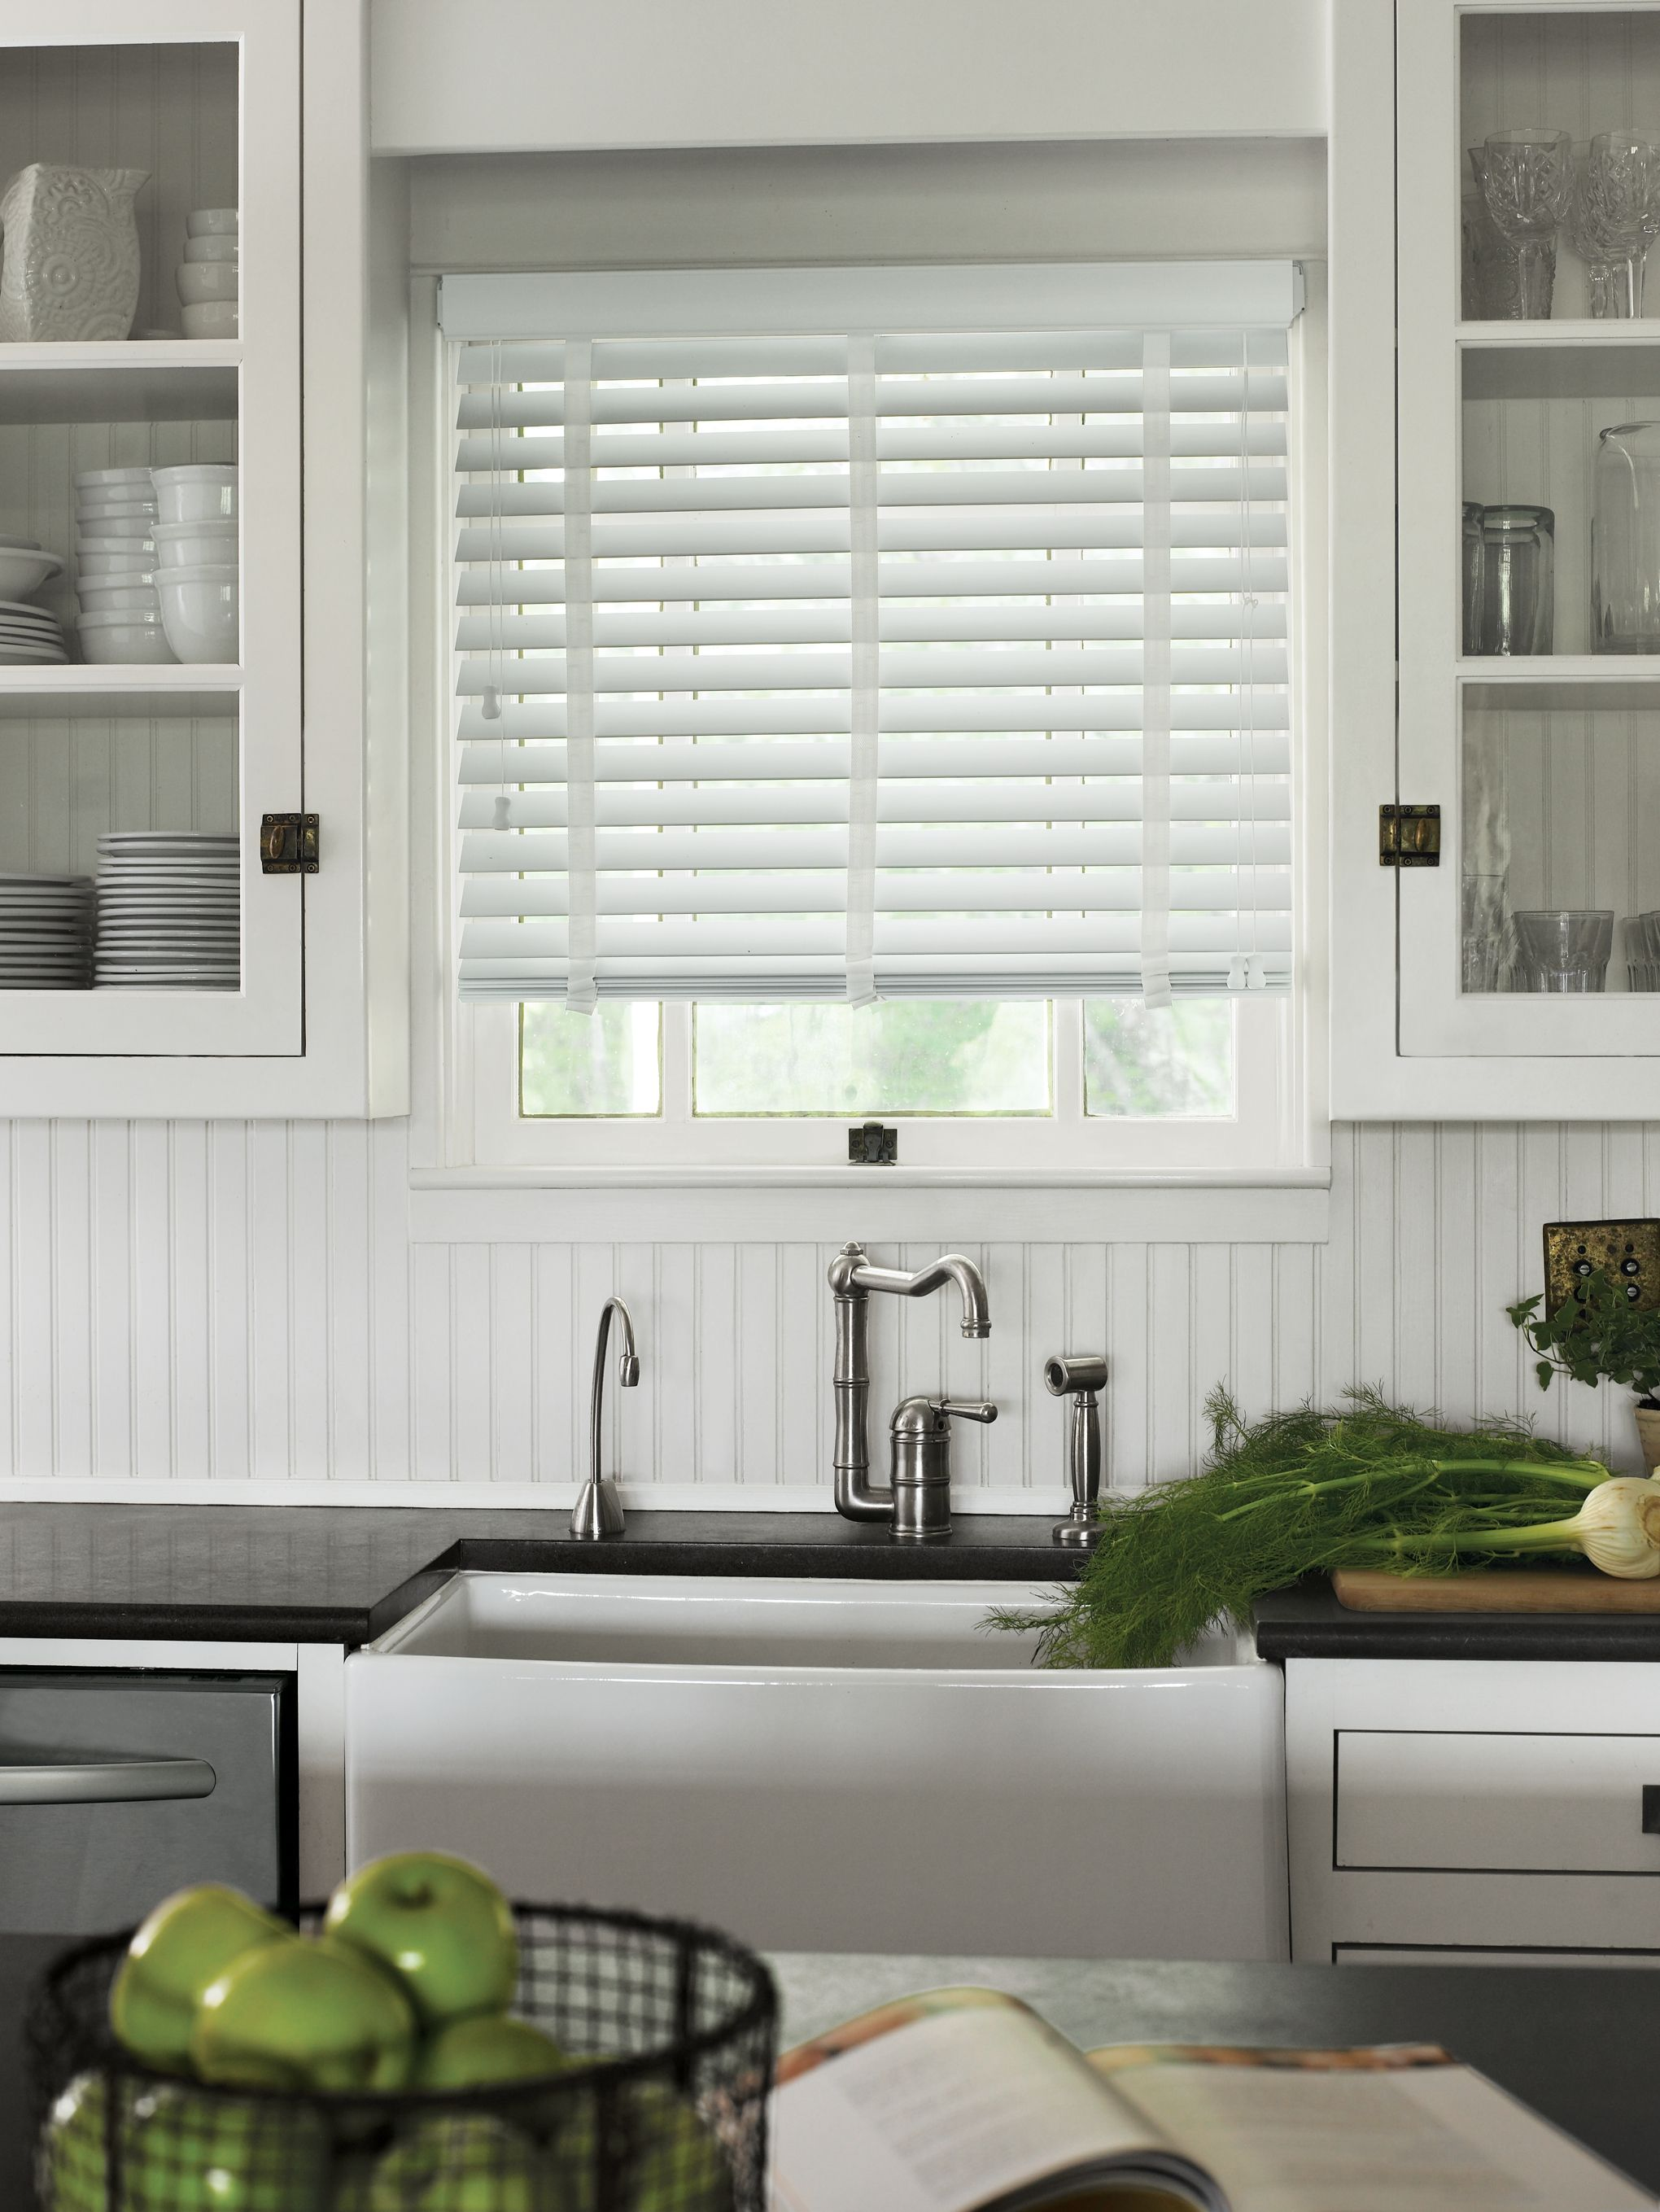 blinds for kitchen windows furniture window treatment ideas idea pinterest best pictures images and photos about wood windowtreatments windowideas windowinteriors windowtreatmentsforworkplace